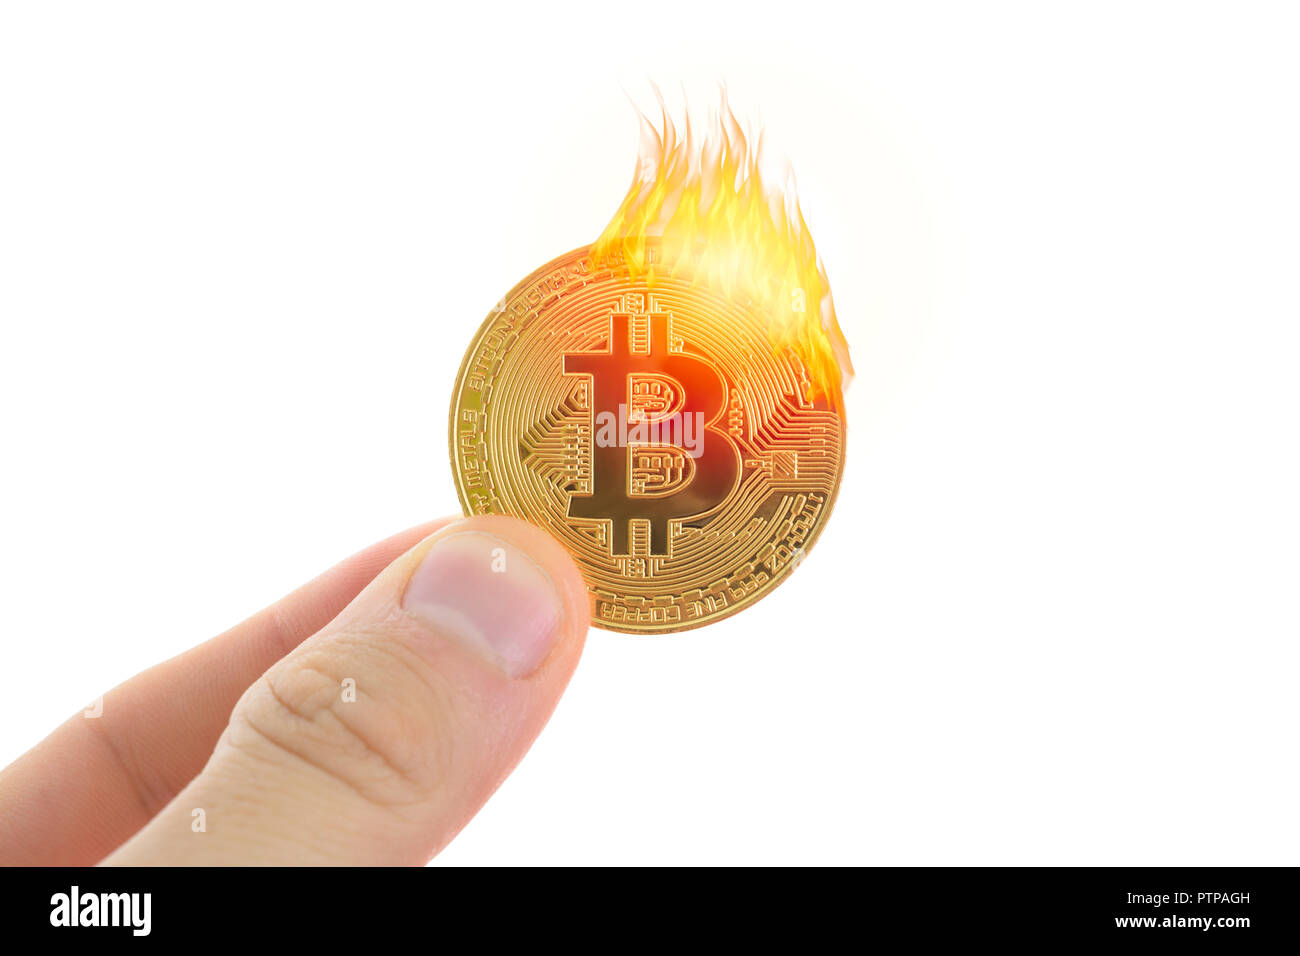 Burning bitcoin. The concept of the fall and collapse of the crypto currency. Stock Photo